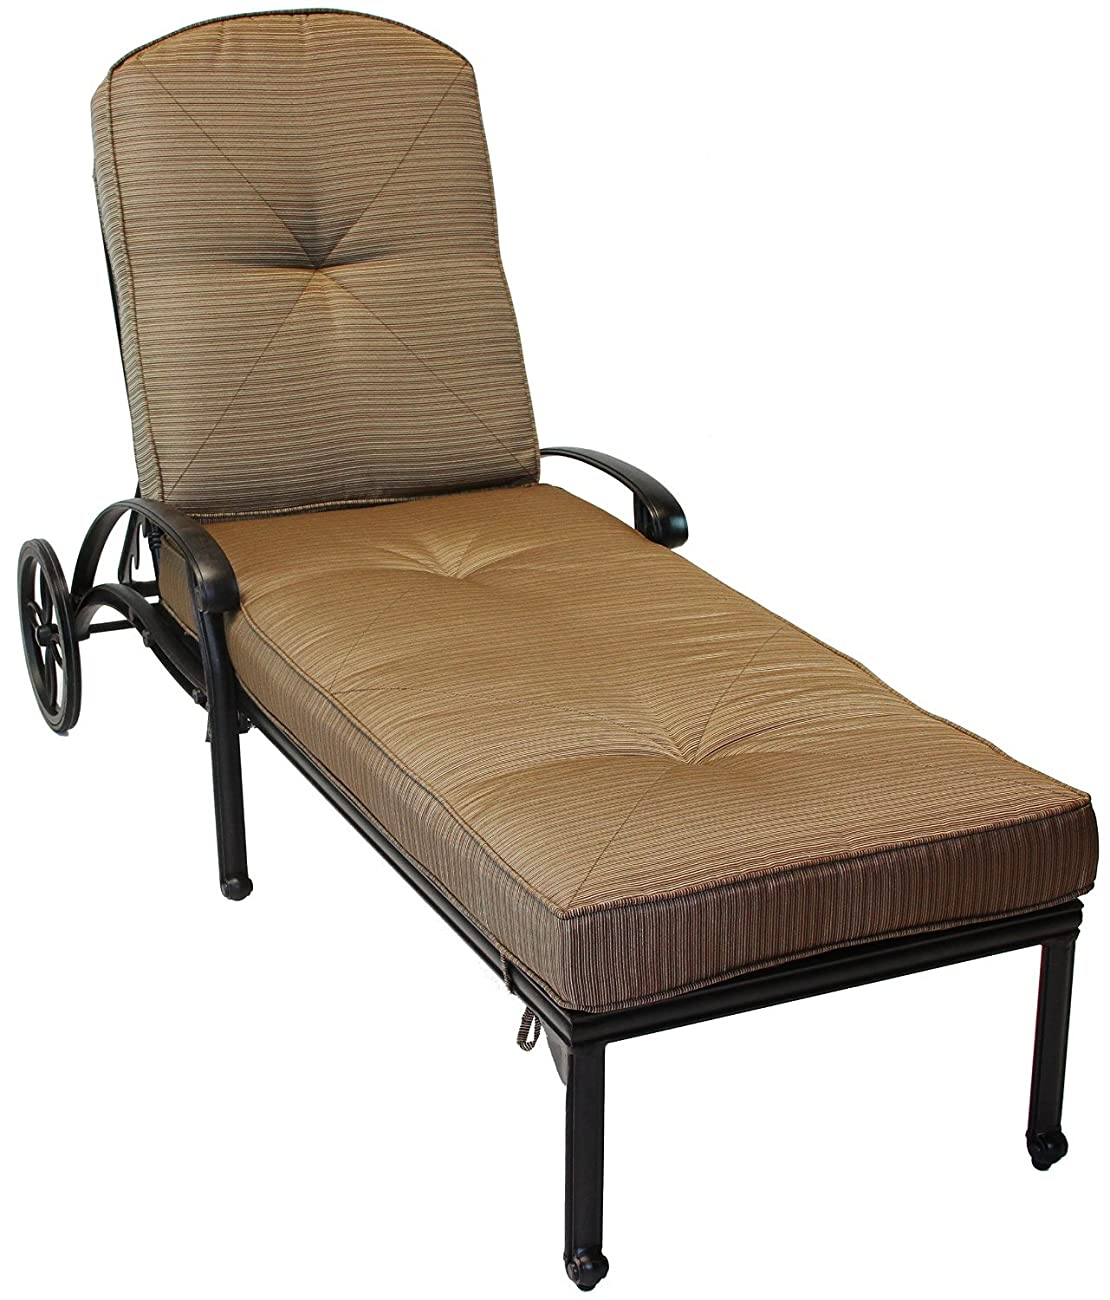 Mandalay Cast Aluminum Powder Coated Chaise Lounge with Cushion - Antique Bronze 0